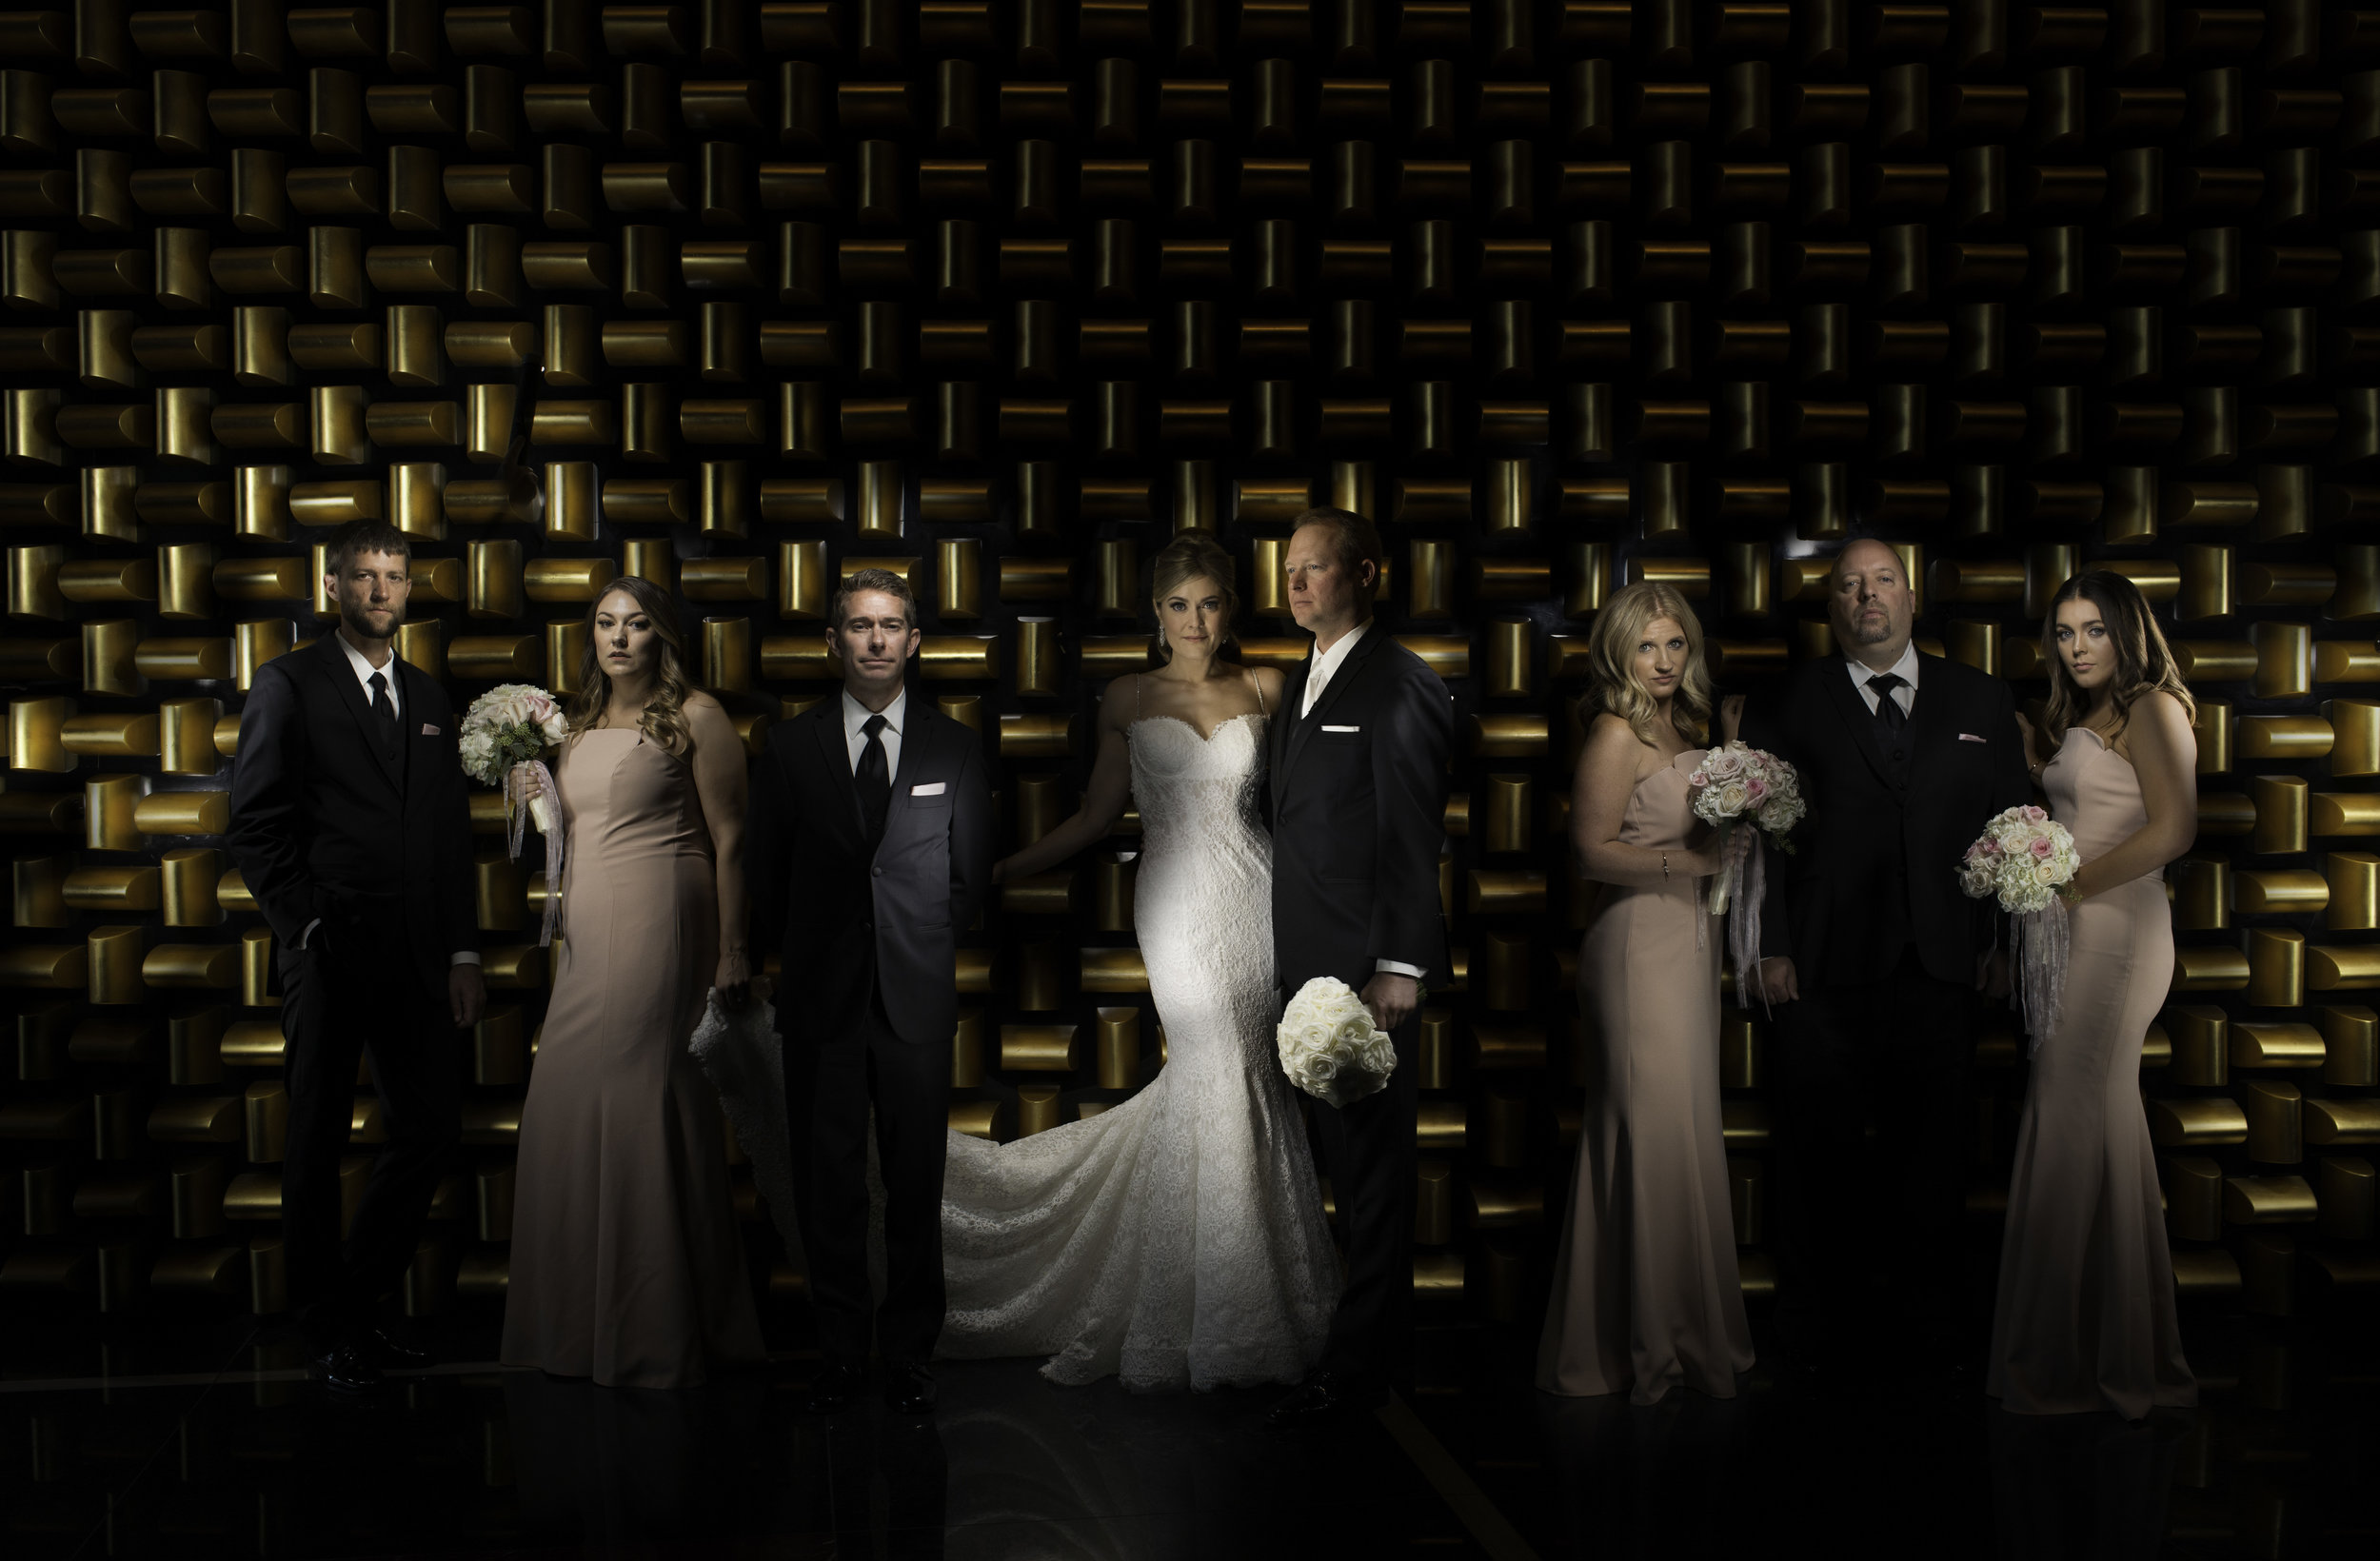 Dramatic Bridal Party Portrait in front of the God Wall at Mandarin Oriental. Las Vegas  Wedding Planner Andrea Eppolito  .   Image by AltF.